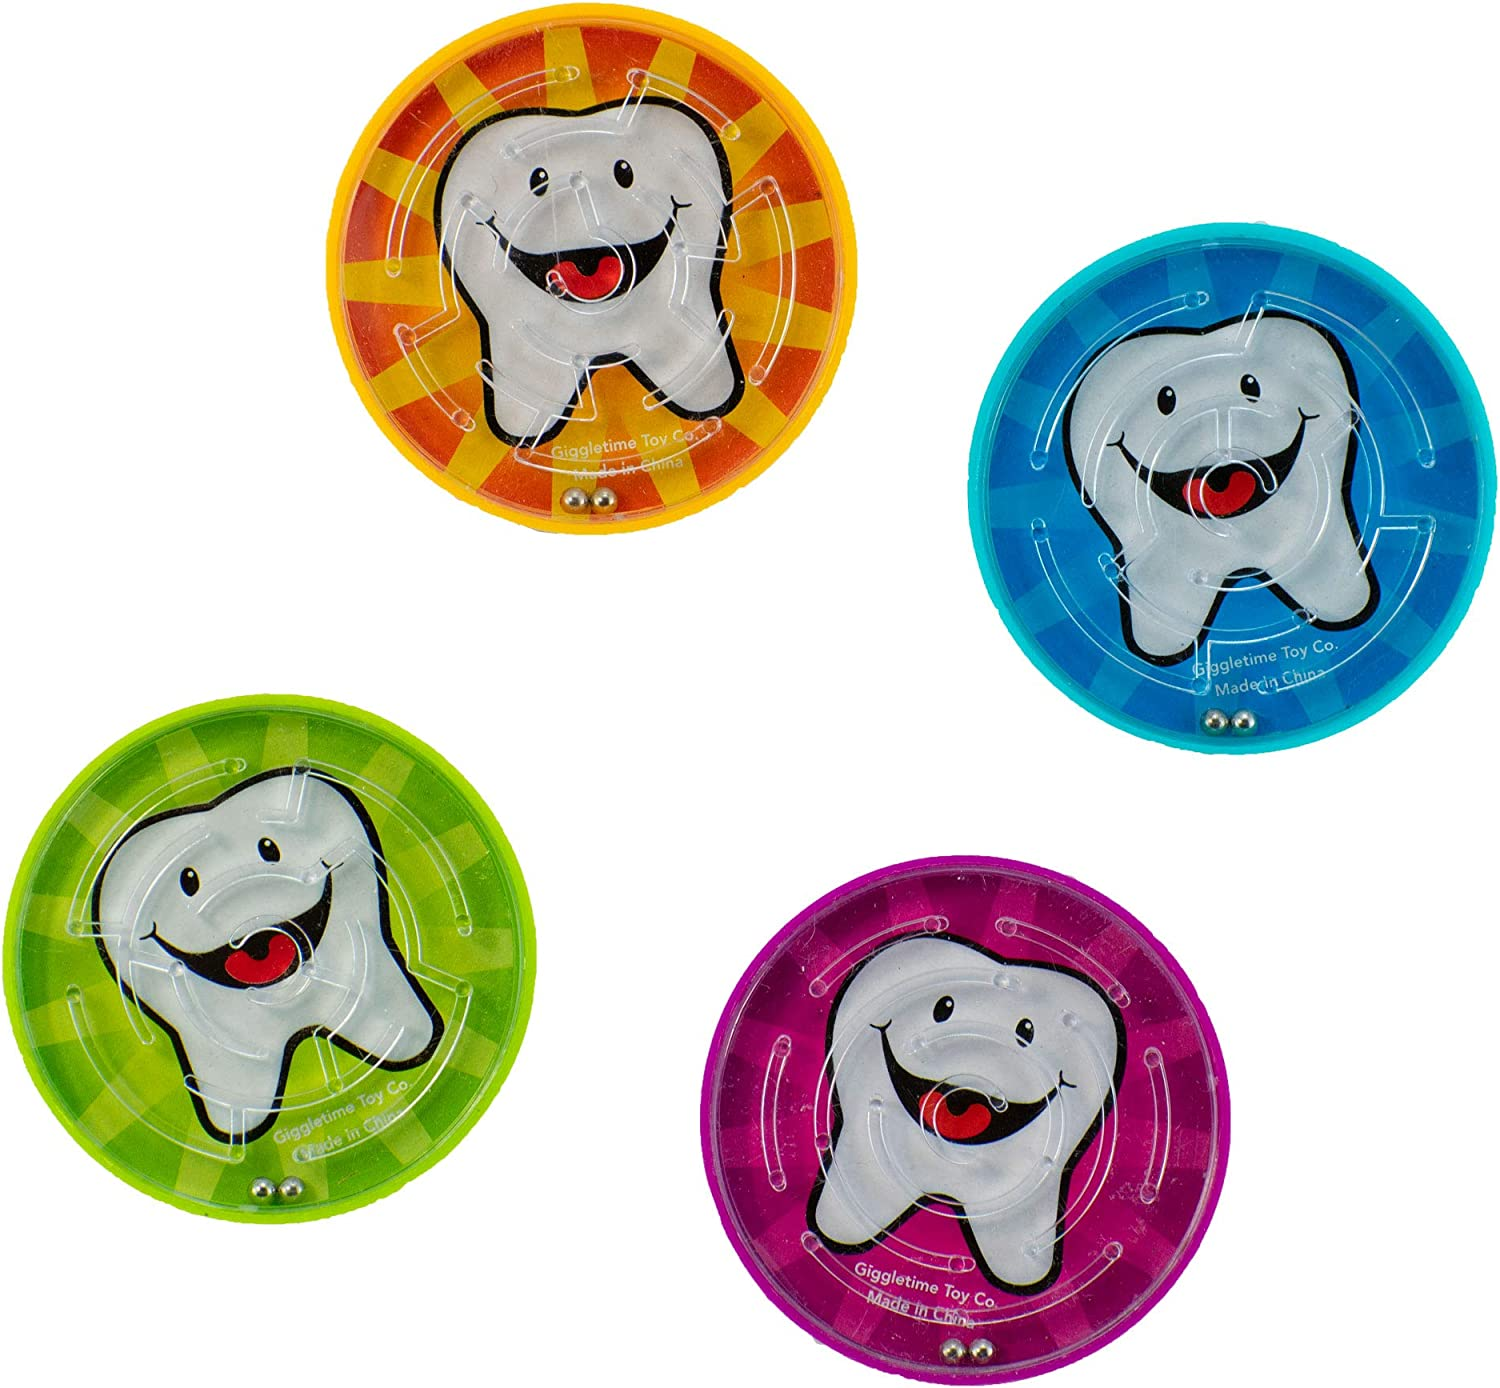 Giggle Time Dental Puzzle Game - (36) Pieces - Assorted Colors - for Kids, Boys and Girls, Party Favors, Pinata Stuffers, Children's Gift Bags, Carnival Prizes